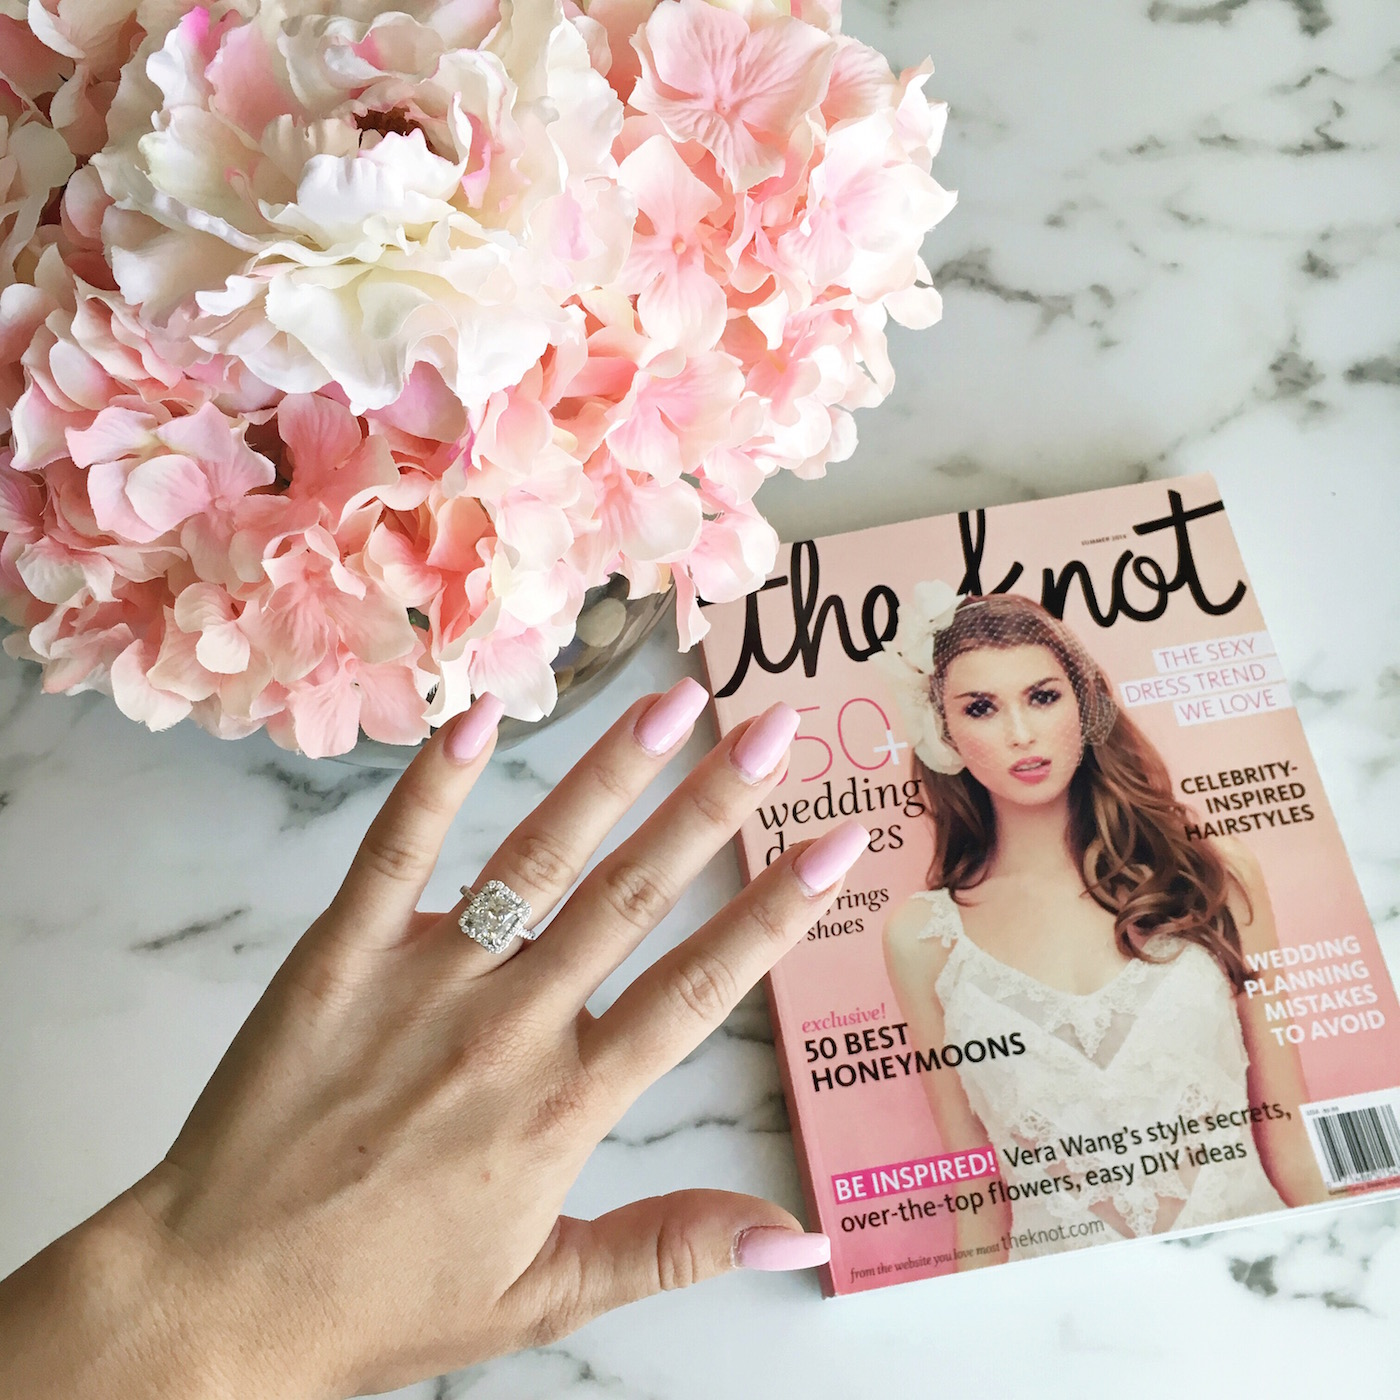 Blondie in the City | Instagram: @HayleyLarue | Engagement Ring | Radiant Cut Diamond Ring with Halo | The Knot Magazine